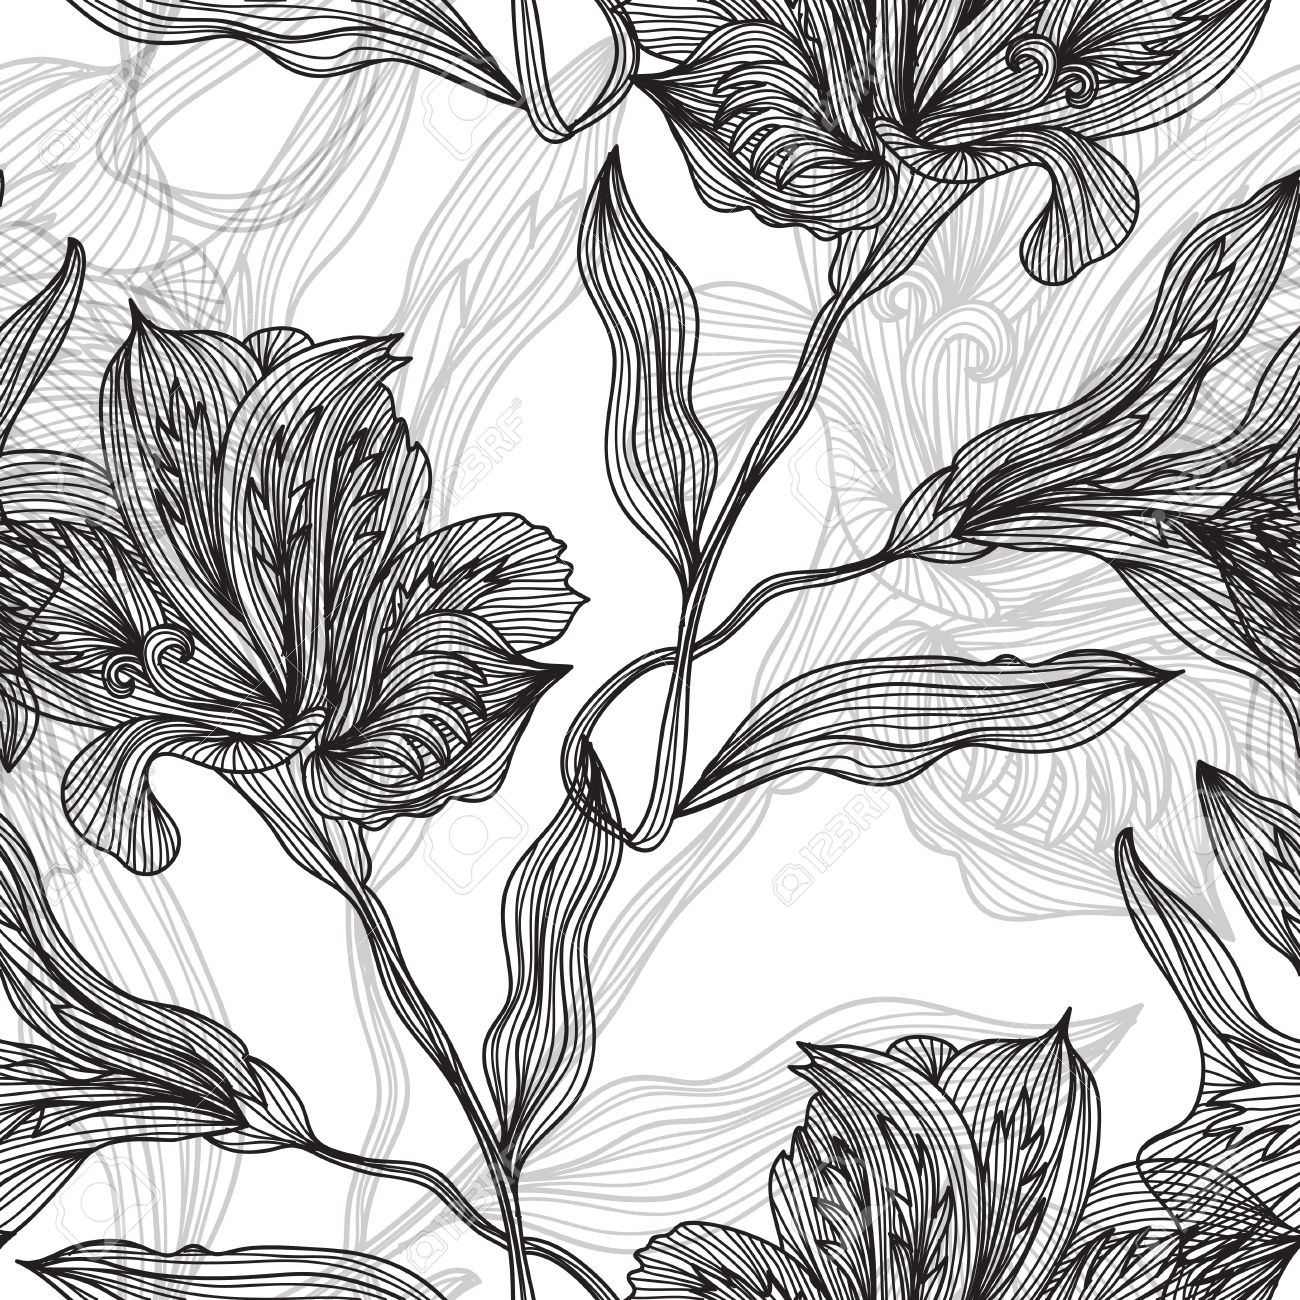 1300x1300 Botanical Illustrations Black And White